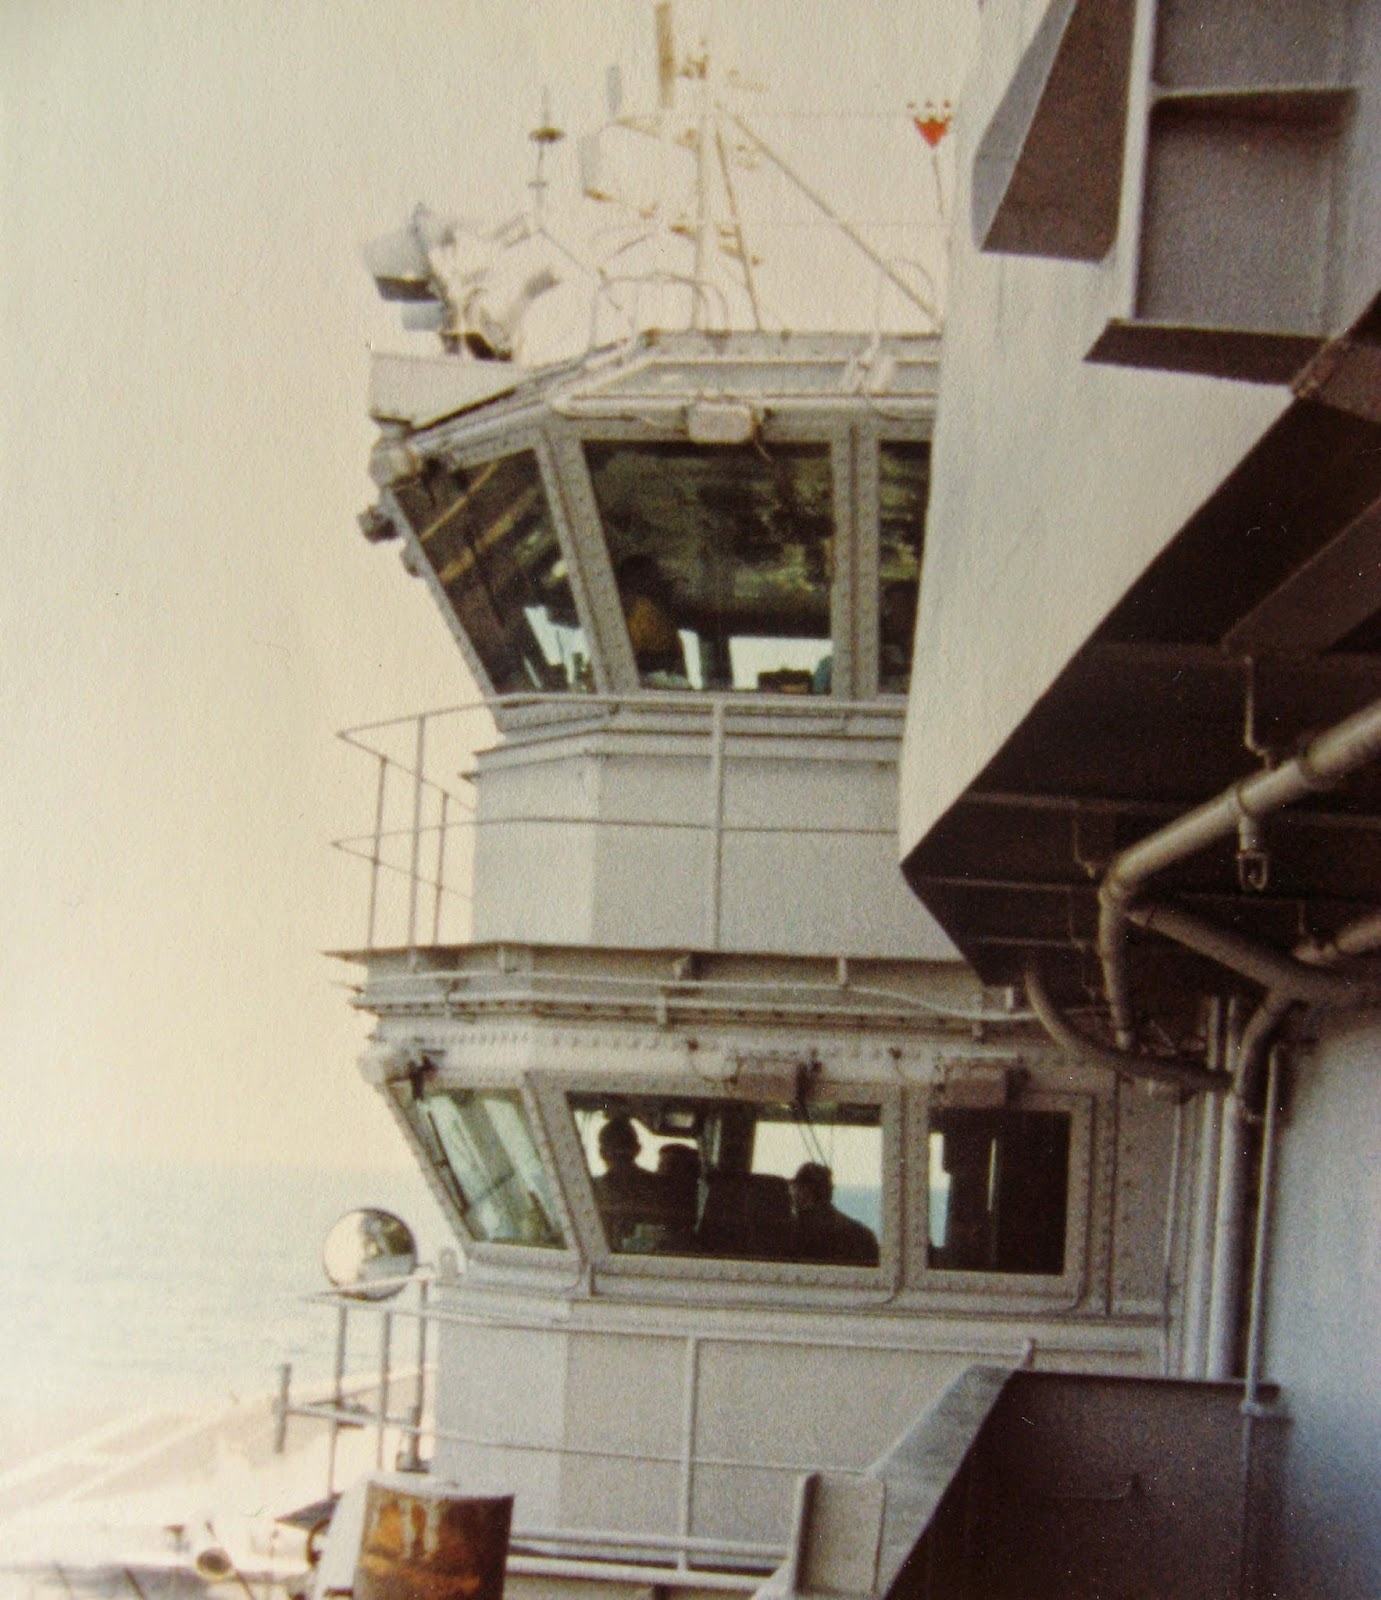 I snapped one of the Top 2 levels of the Island on The USS NIMITZ where the captain & Air Boss ran the show January 1983